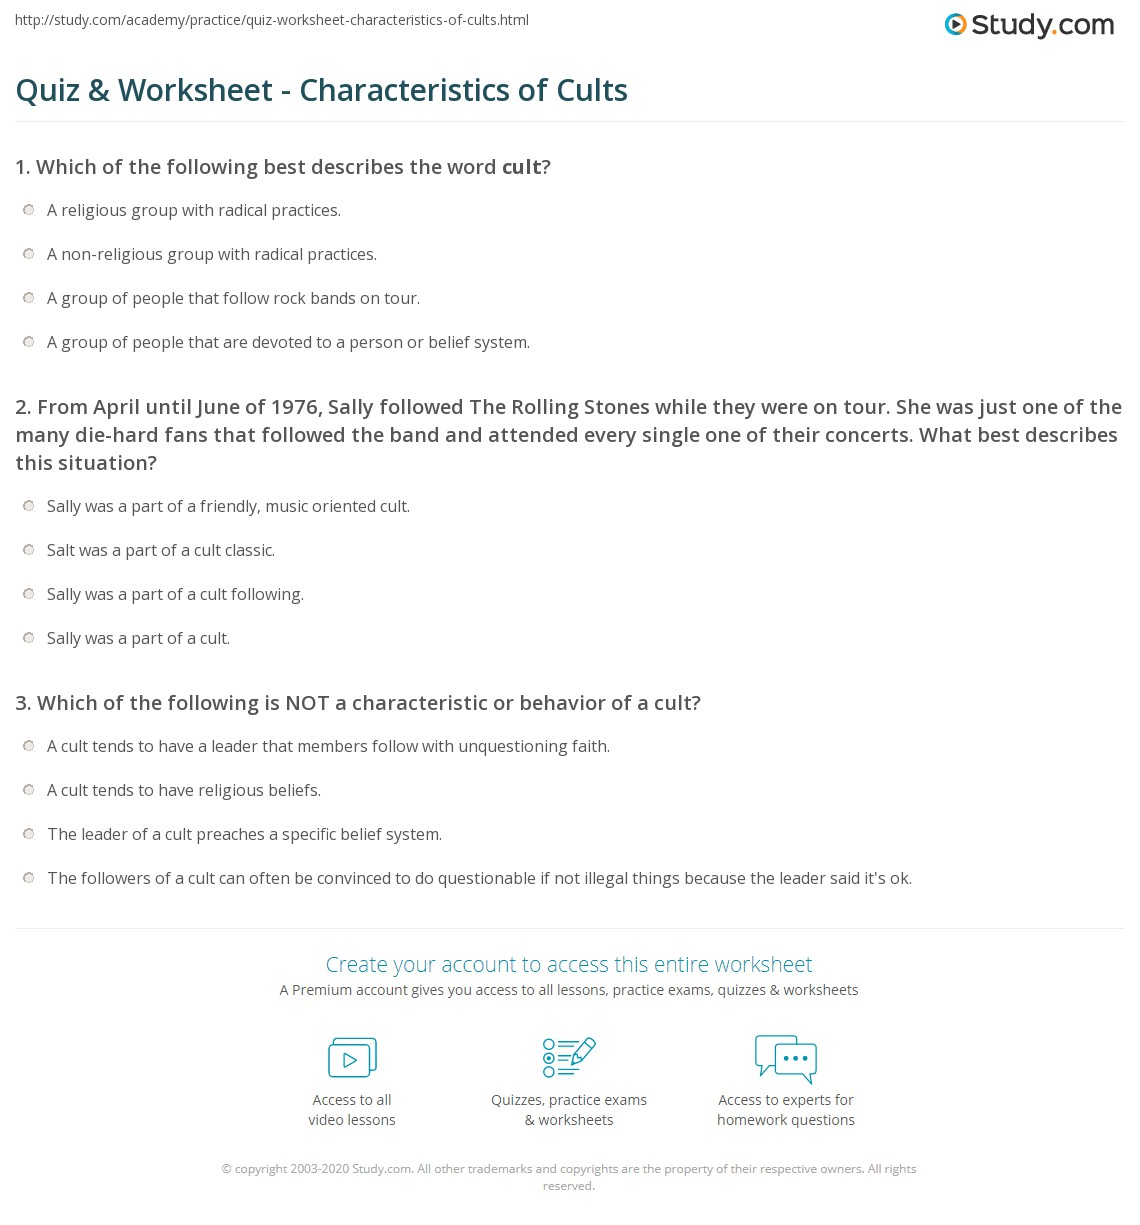 quiz & worksheet - characteristics of cults | study